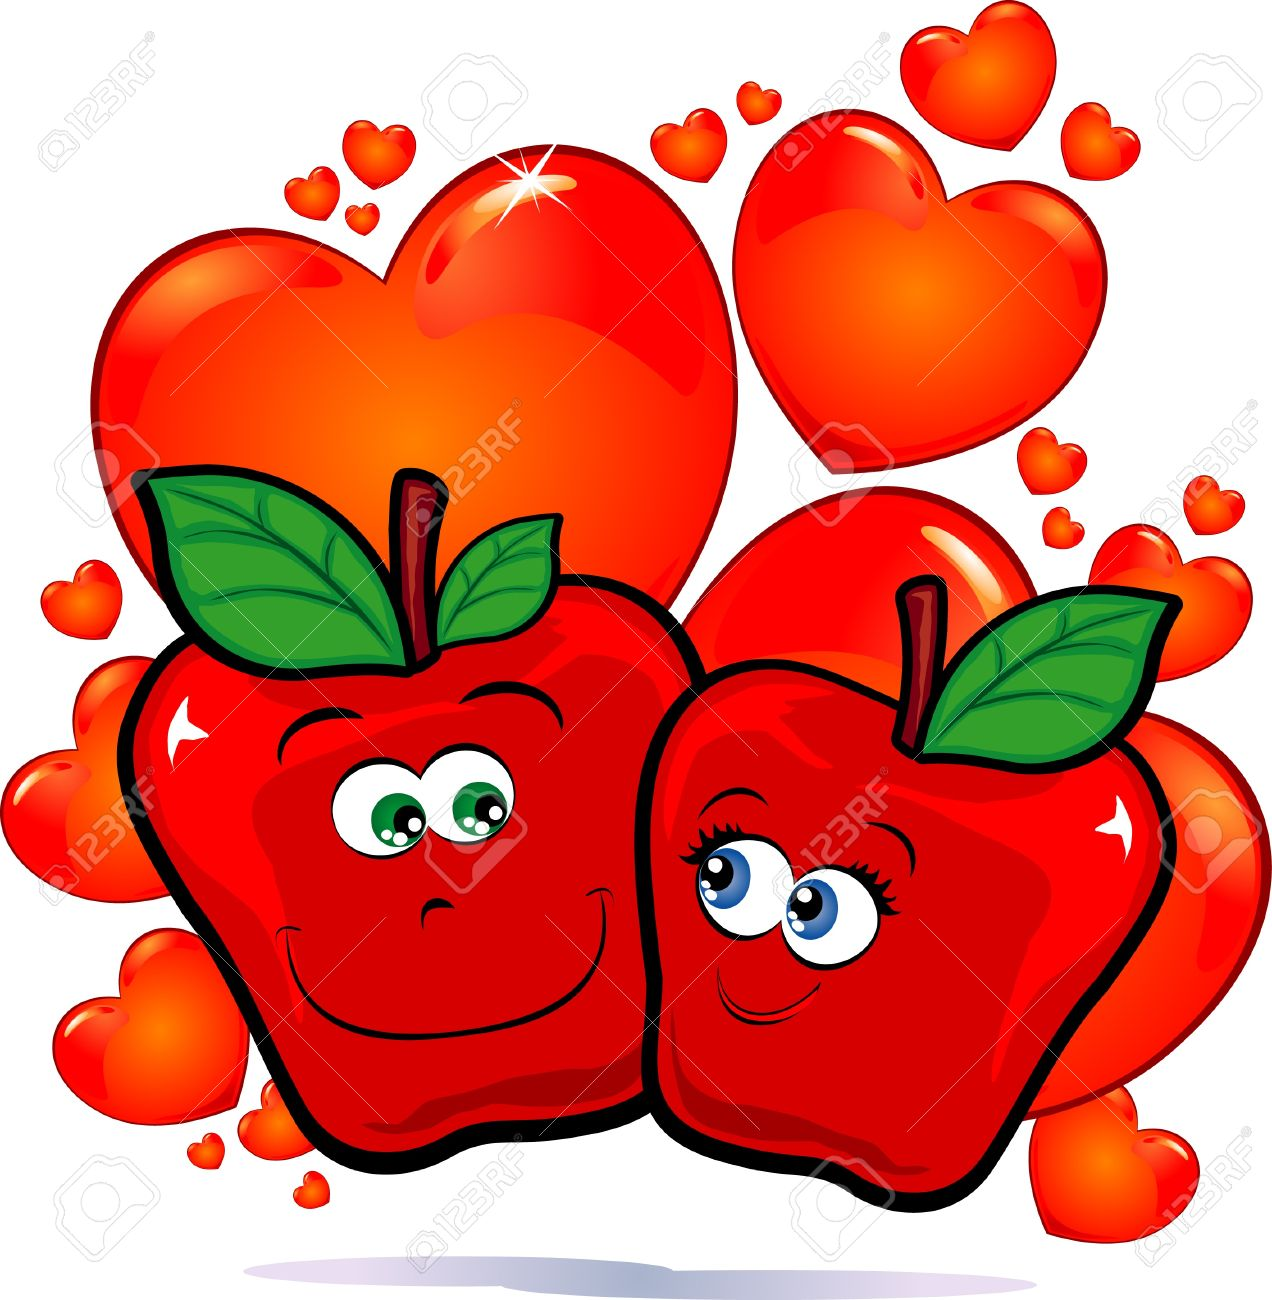 Love apple clipart - Clipground